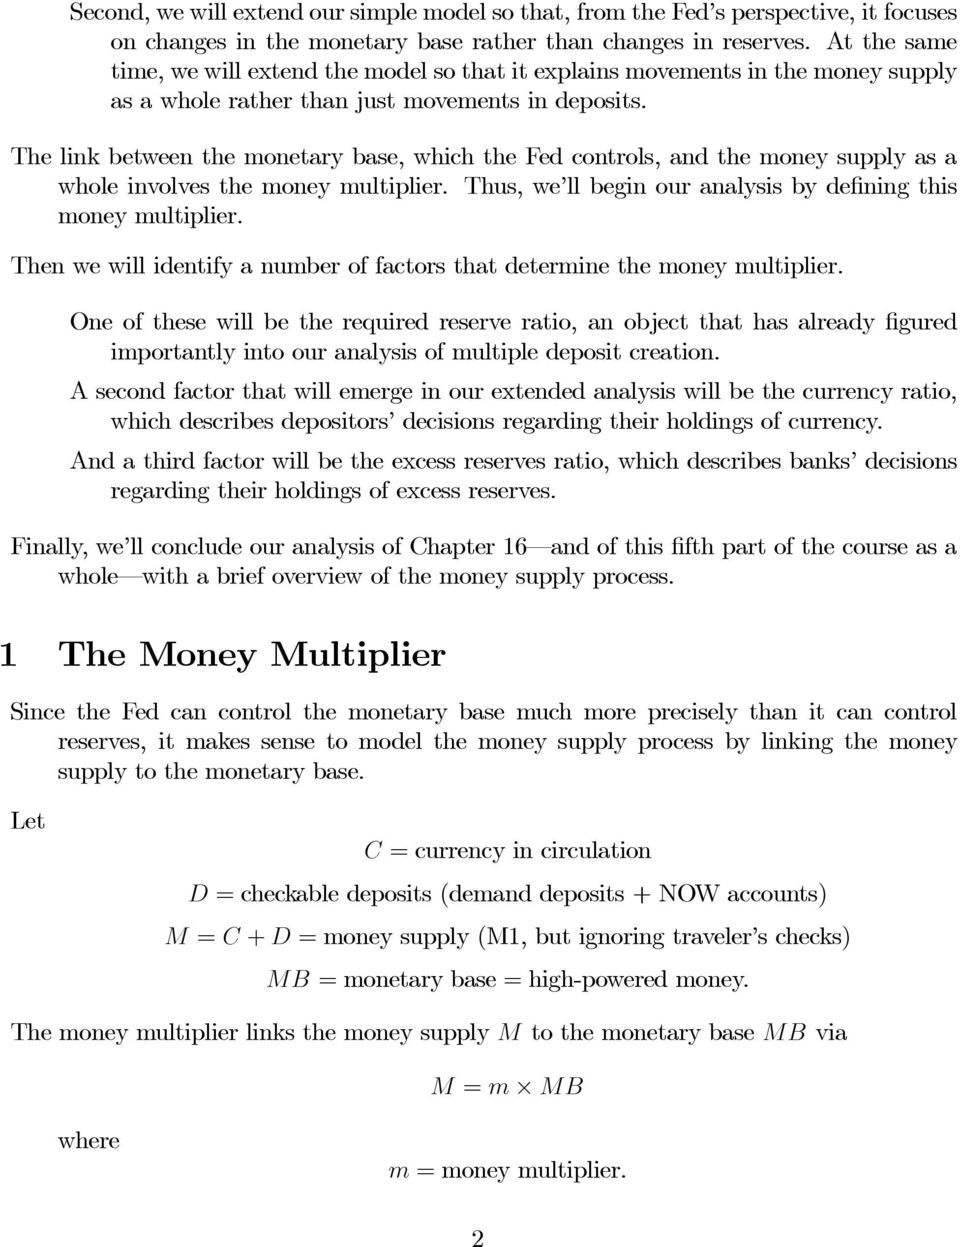 The link between the monetary base, which the Fed controls, and the money supply as a whole involves the money multiplier. Thus, we ll begin our analysis by defining this money multiplier.